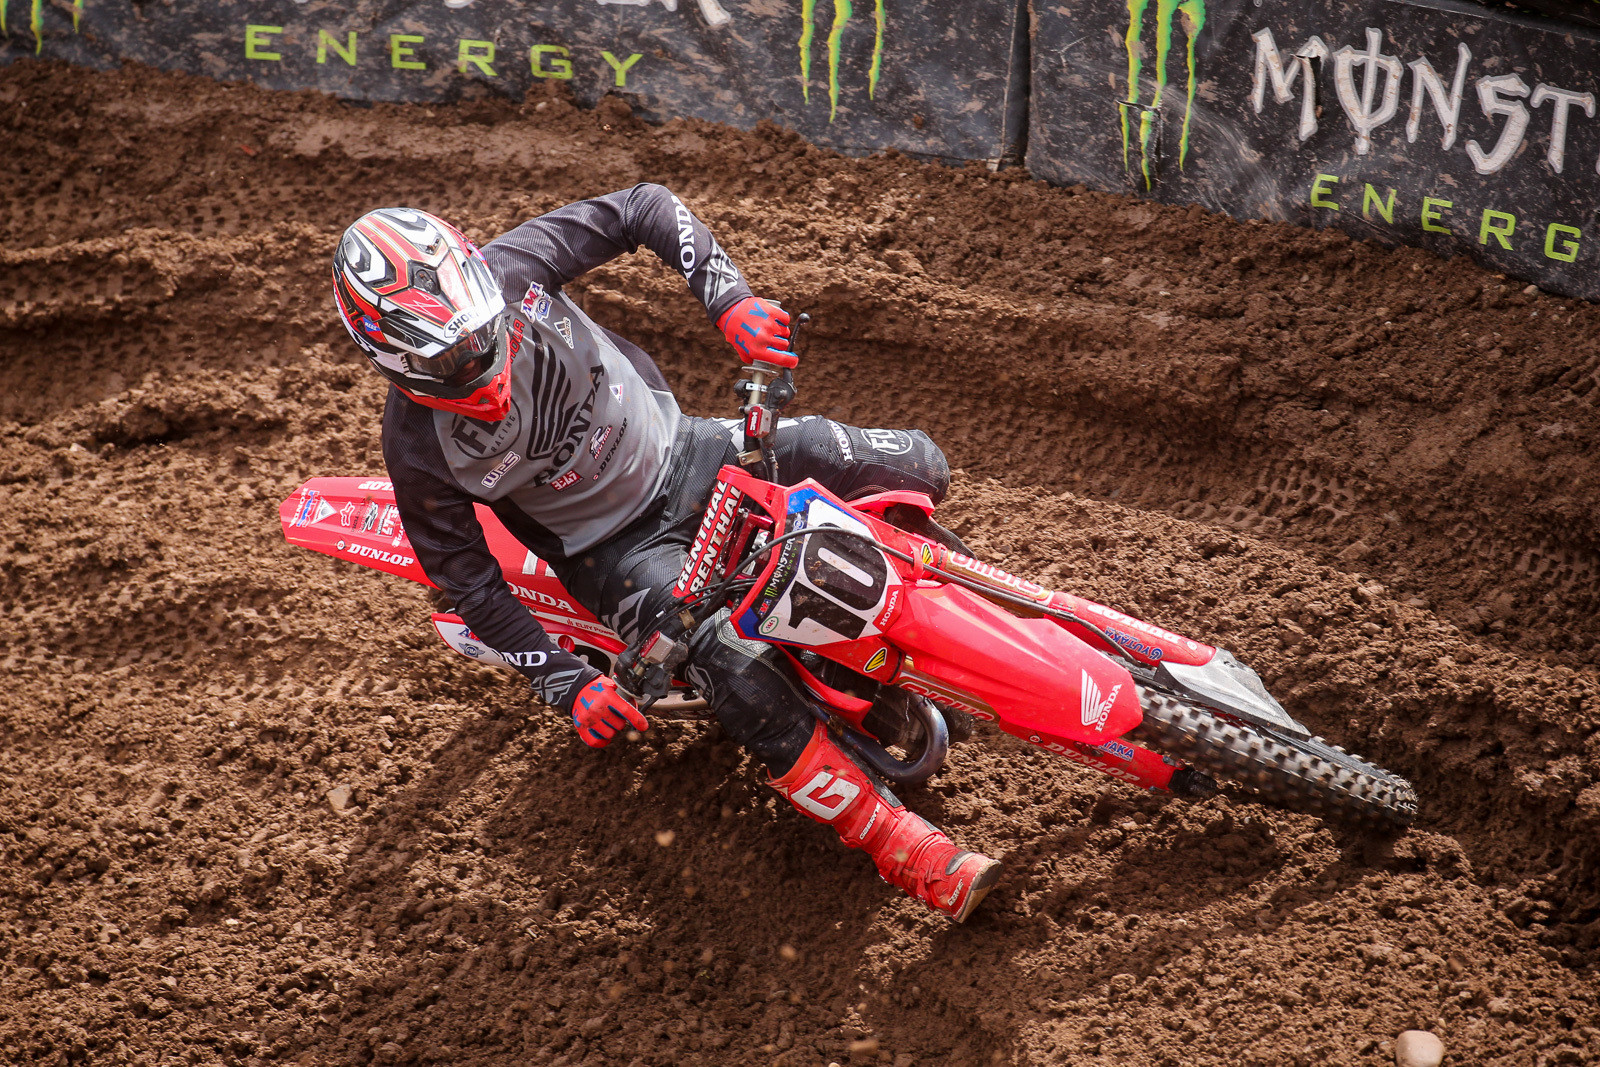 Justin Brayton's +9 nabbed him the top spot in the plus column. He had a lot of opportunity for passing after getting caught in a first turn crash.